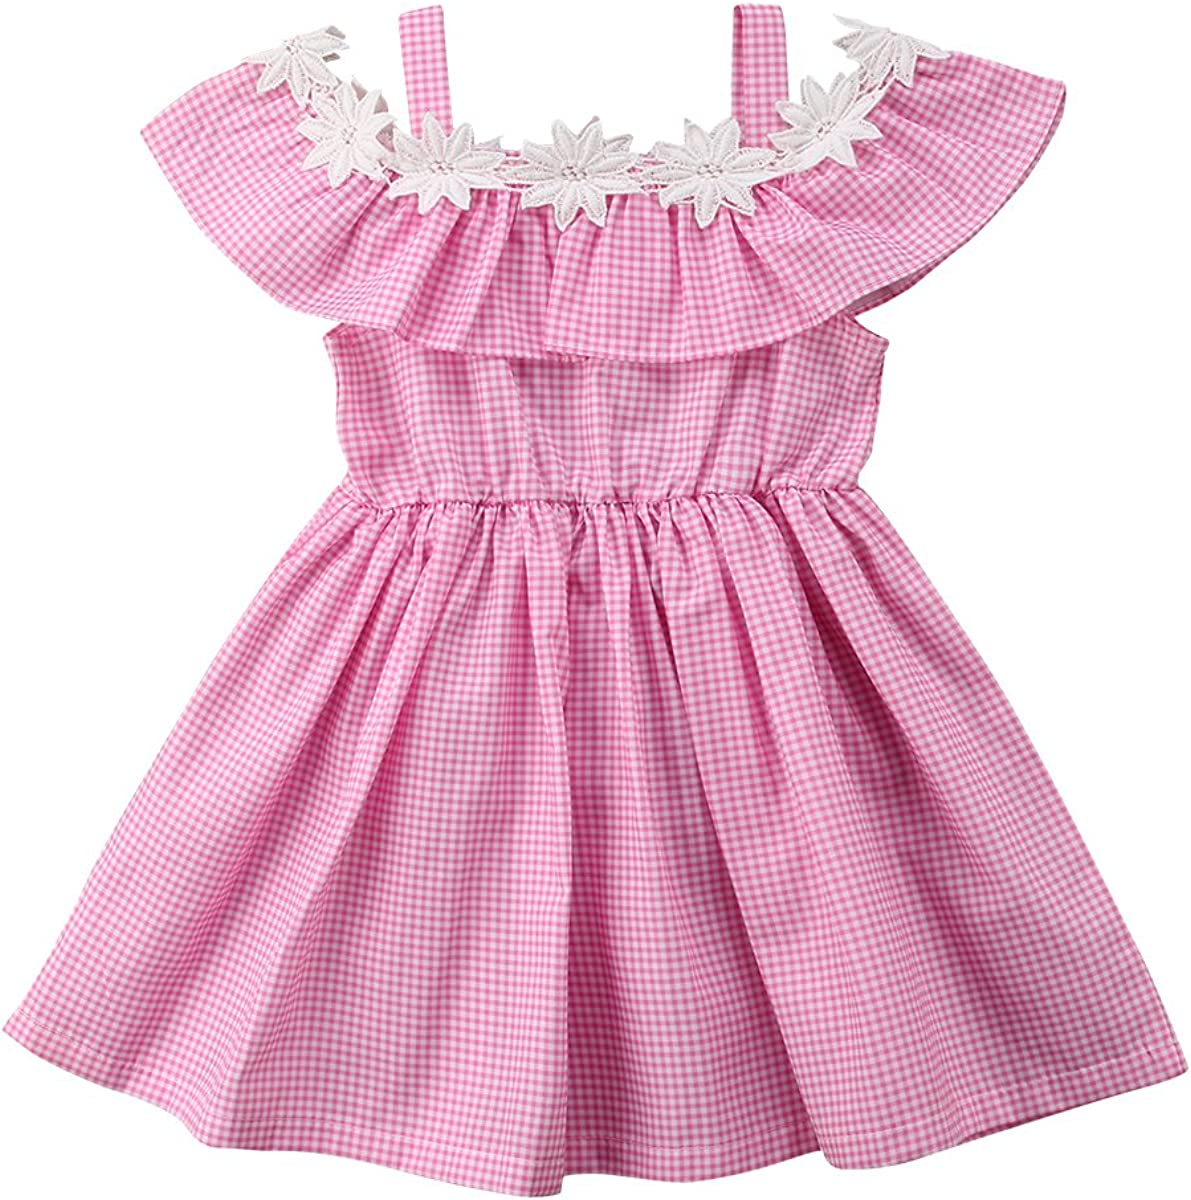 West Sweety Baby Girls Off Shoulder Ruffled Princess Dress Fashion Plaid Casual A-line Dress 0-6T